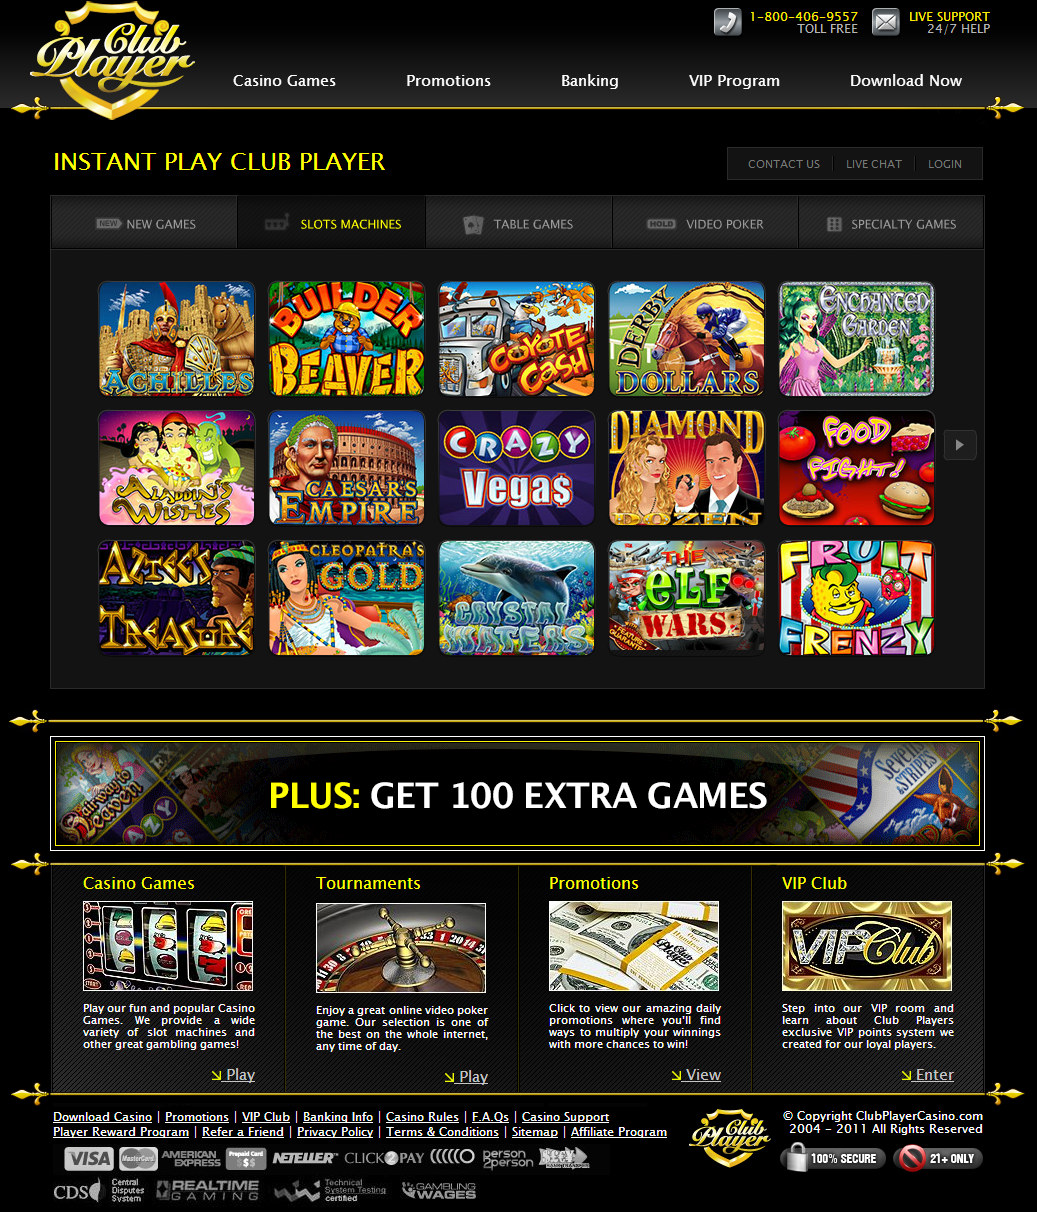 Club Player Casino App